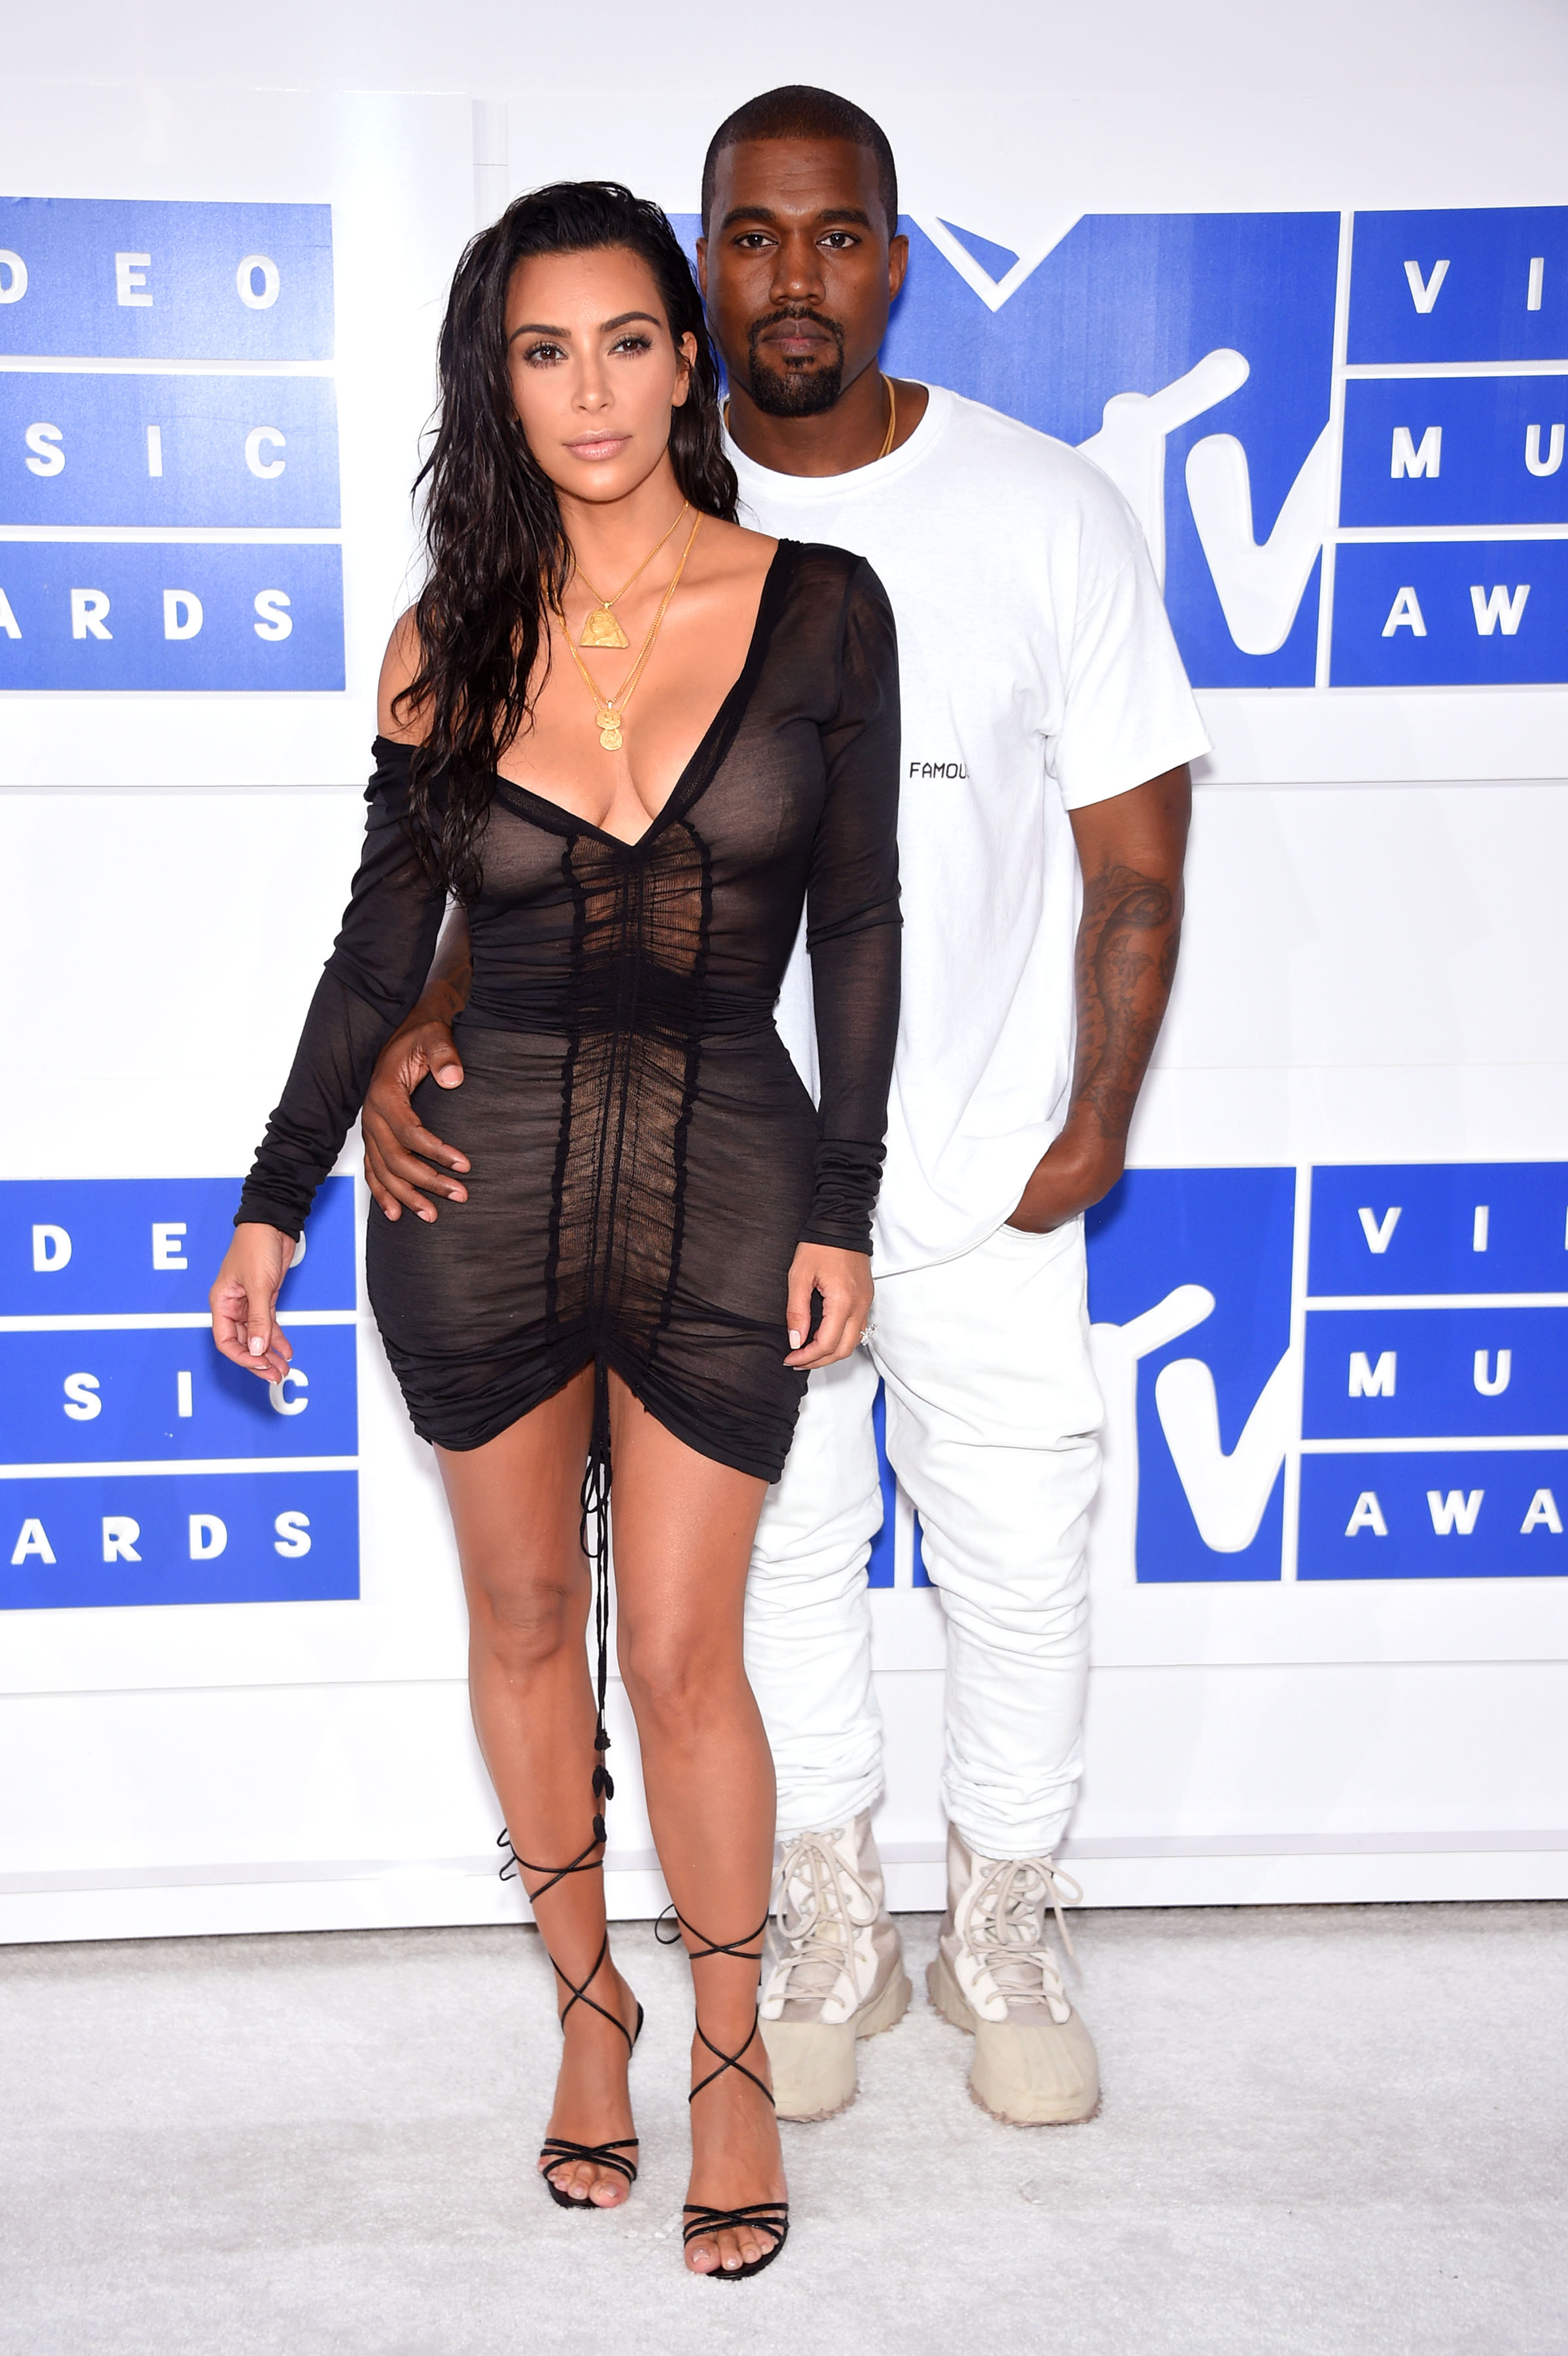 Kim Kardashian and Kanye West attend the 2016 MTV Video Music Awards at Madison Square Garden on Aug. 28, 2016 in New York City.